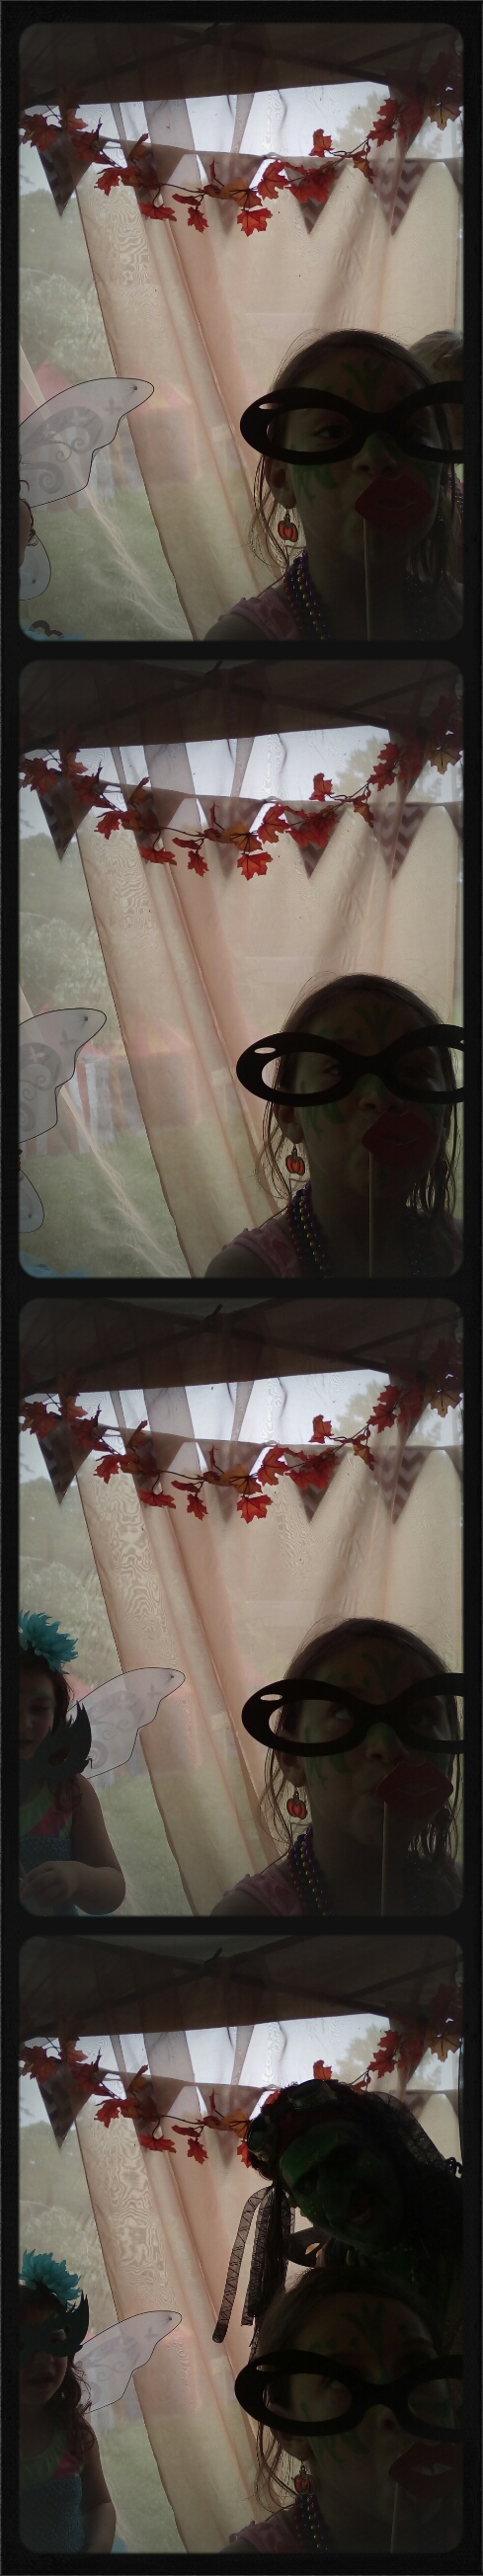 Pocketbooth_20150613142337